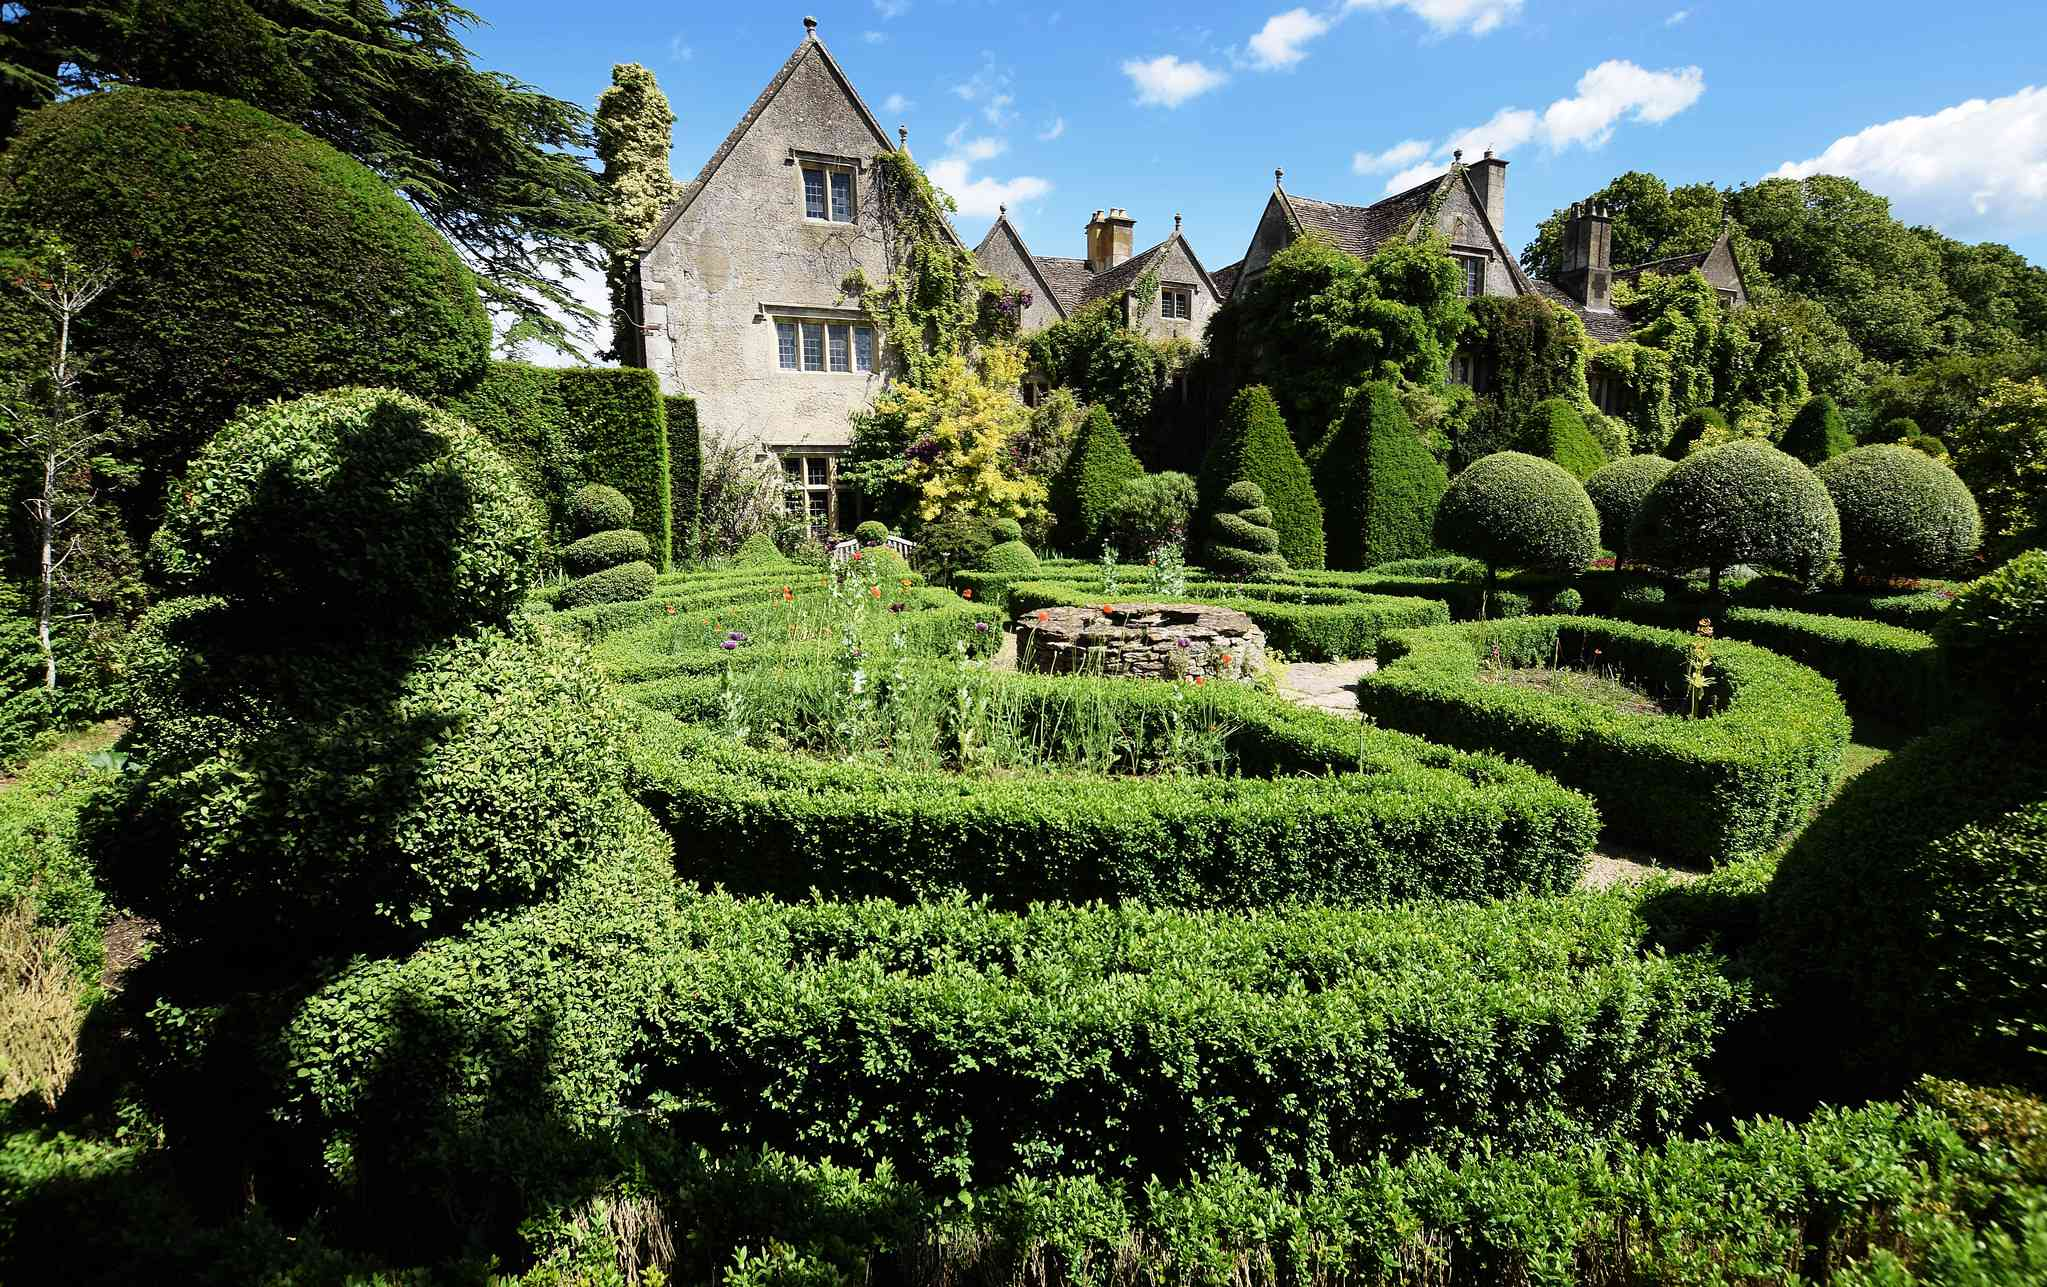 A manicured garden behind a large stone abbey